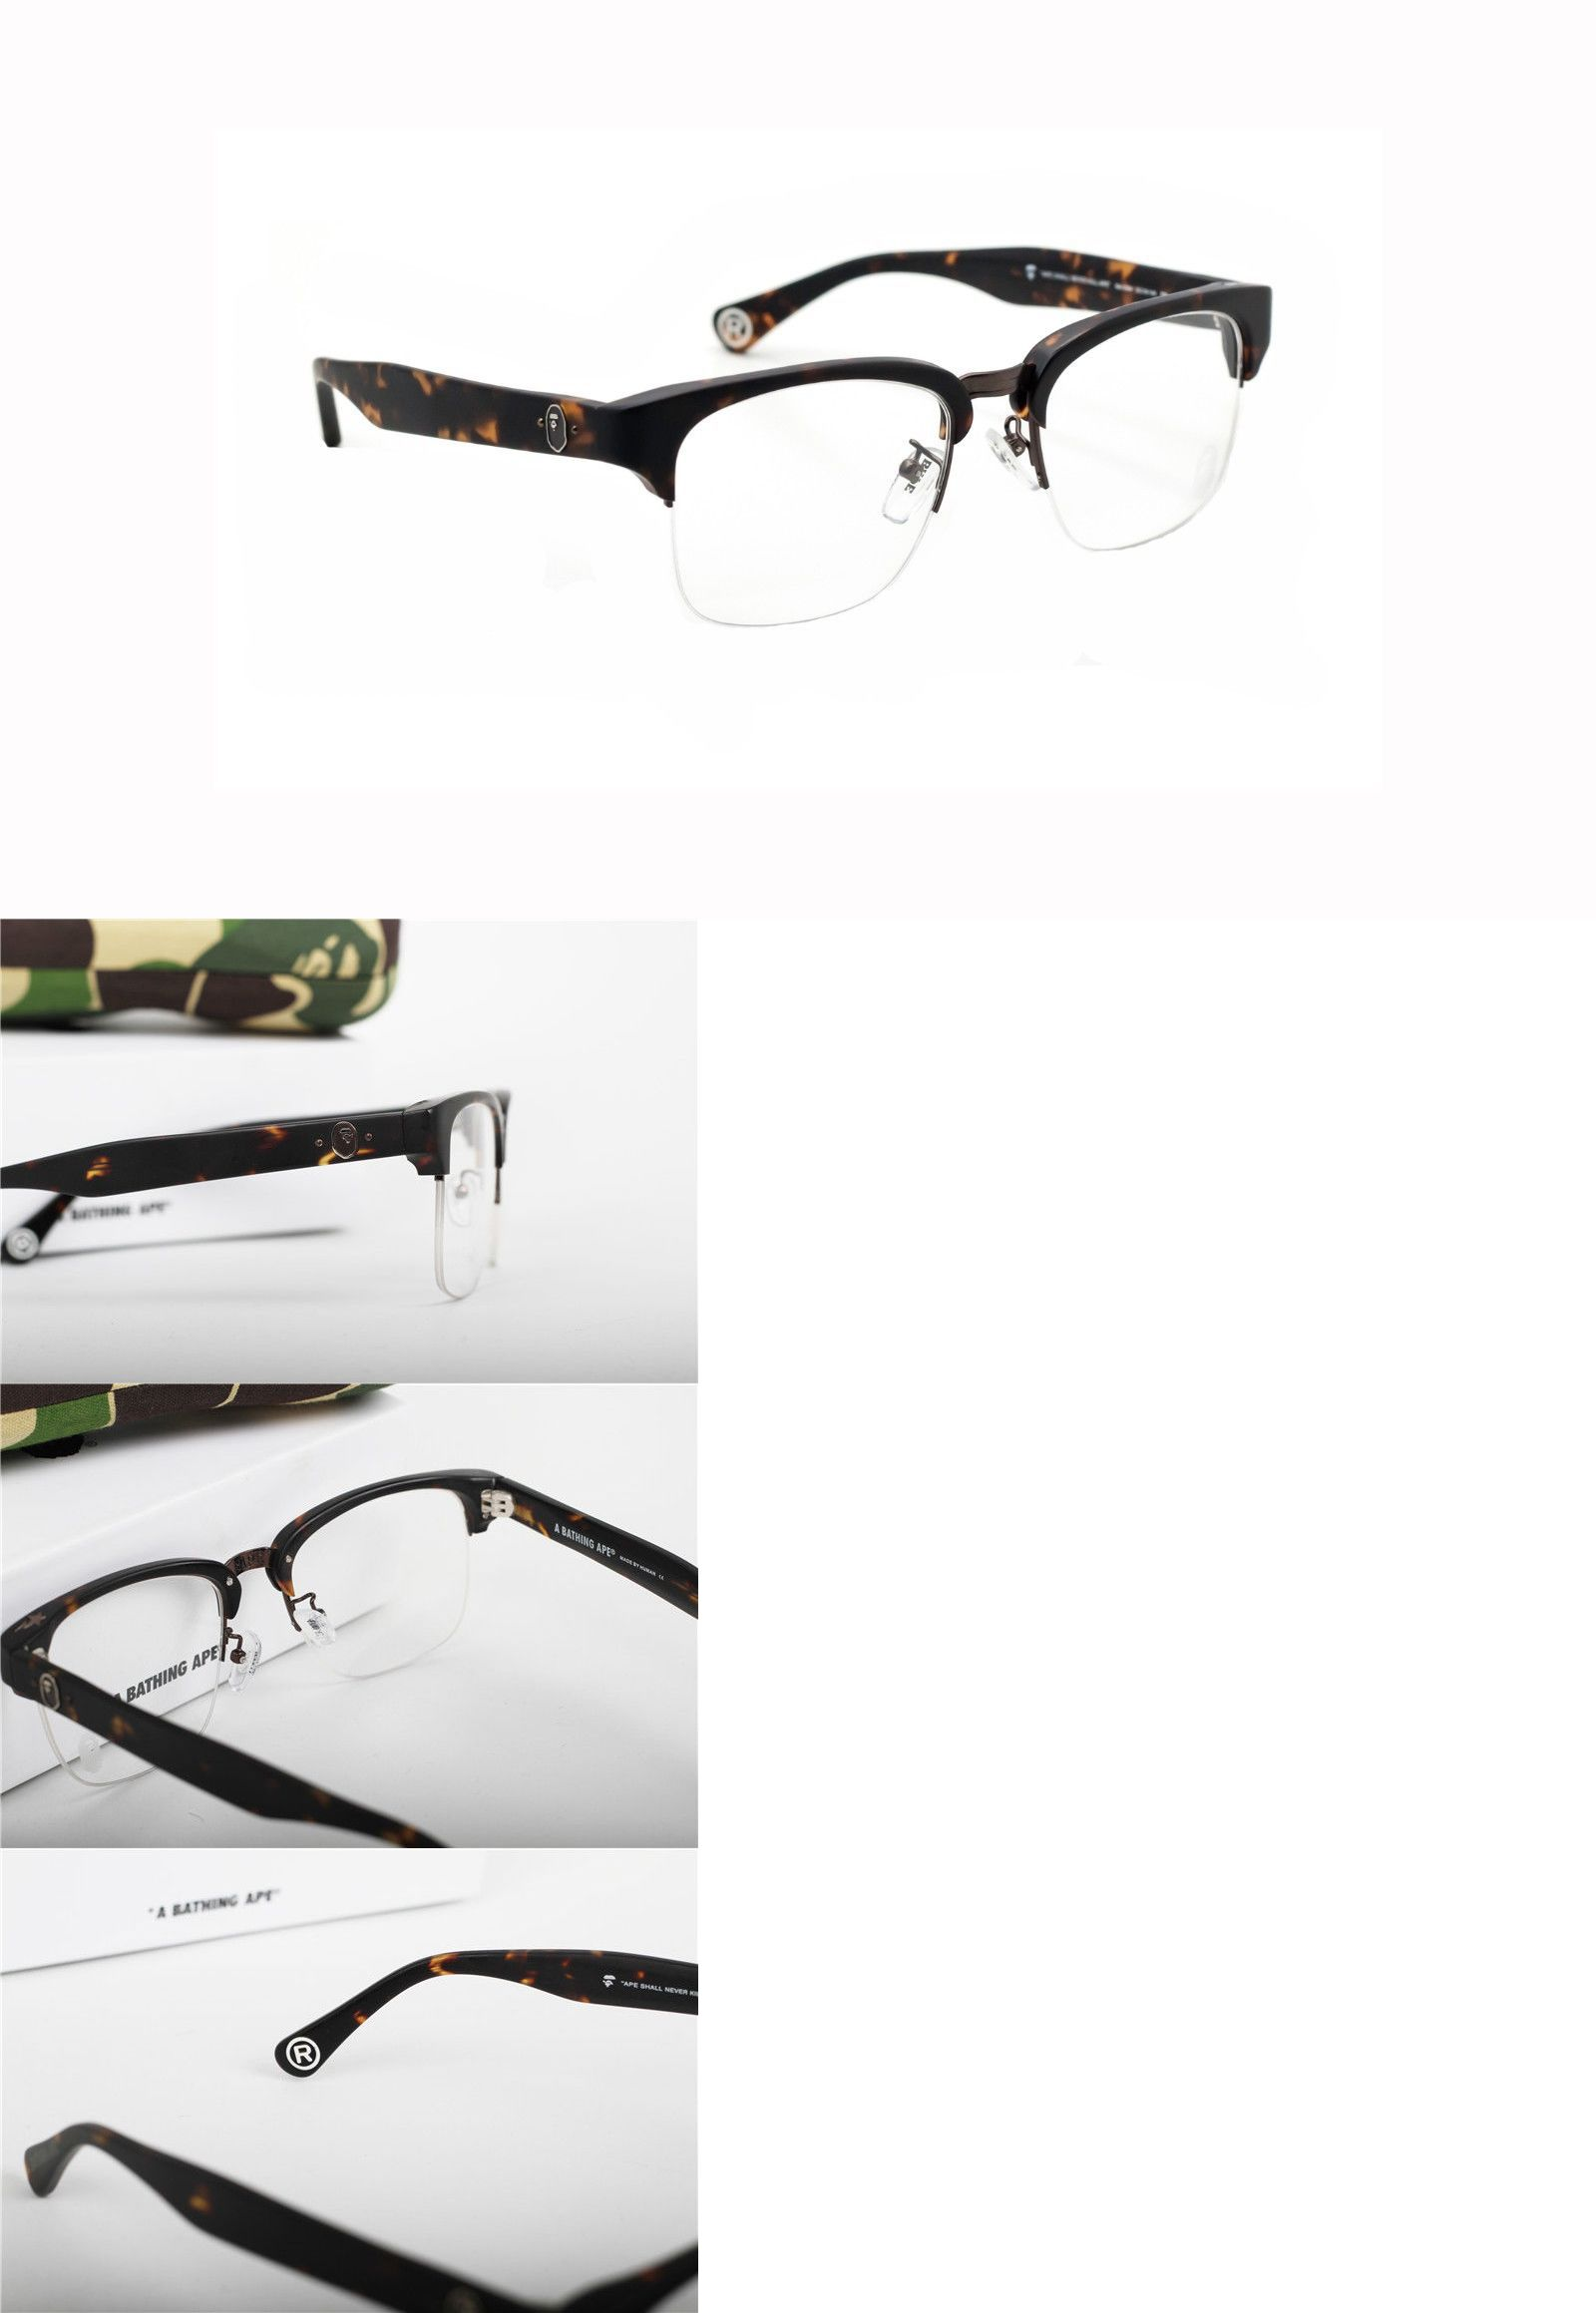 256e259740 Fashion Eyewear Clear Glasses 179240  A Bathing Ape Bape Leopard Club  Master Clear Glasses New With Packing -  BUY IT NOW ONLY   125.85 on eBay!